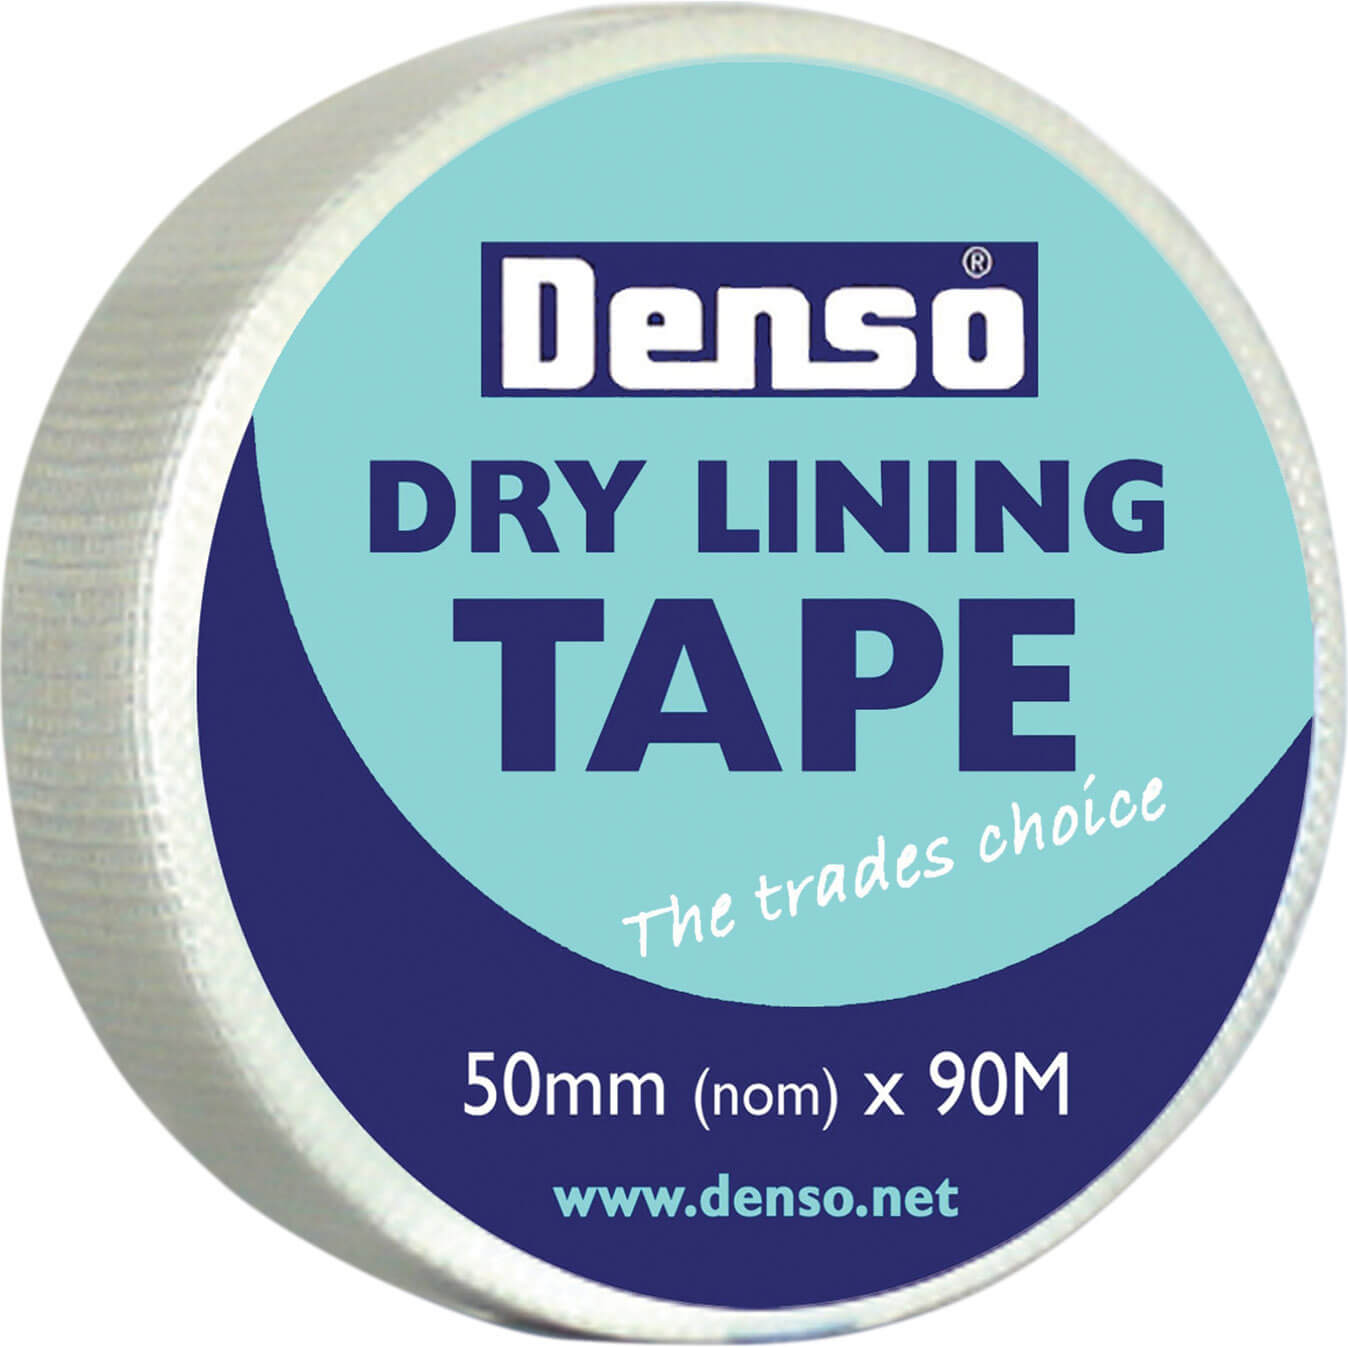 Denso 50mm x 90m Dry Lining Tape